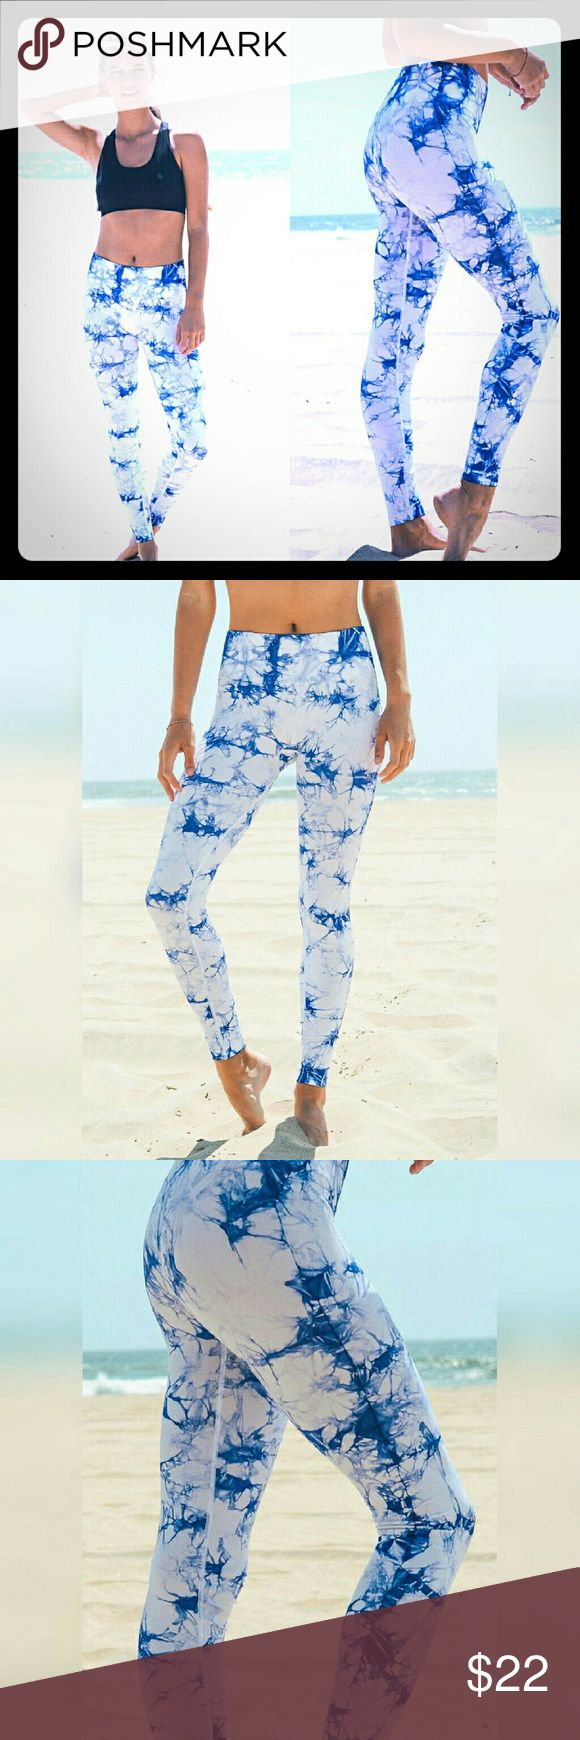 Blue tie dye legging White leggings with blue tie dye pattern.  Legging/ yoga pant/ workout pants  Perfect for yoga or the gym or would also look cute with a long tunic .   Size: Small: 0-2  Medium: 3-5 Pants Leggings